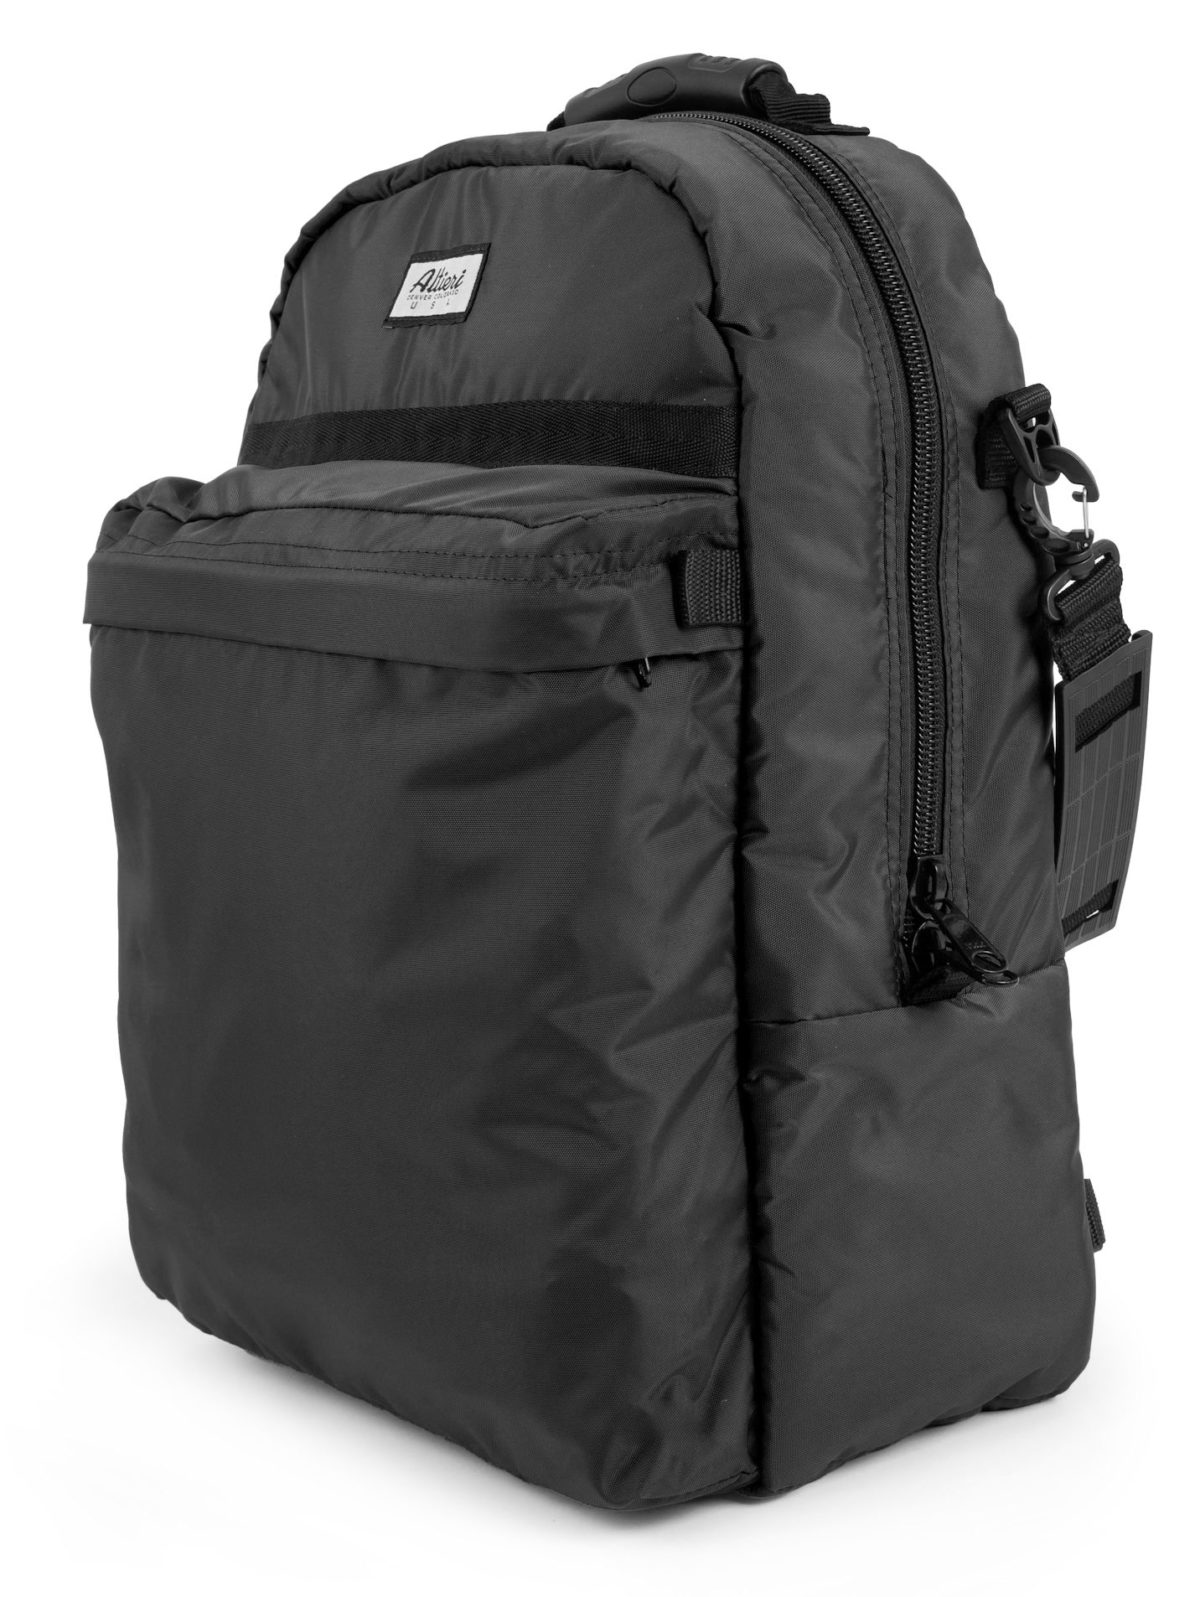 Altieri Clarinet and Laptop Backpack Side View CLBP 00